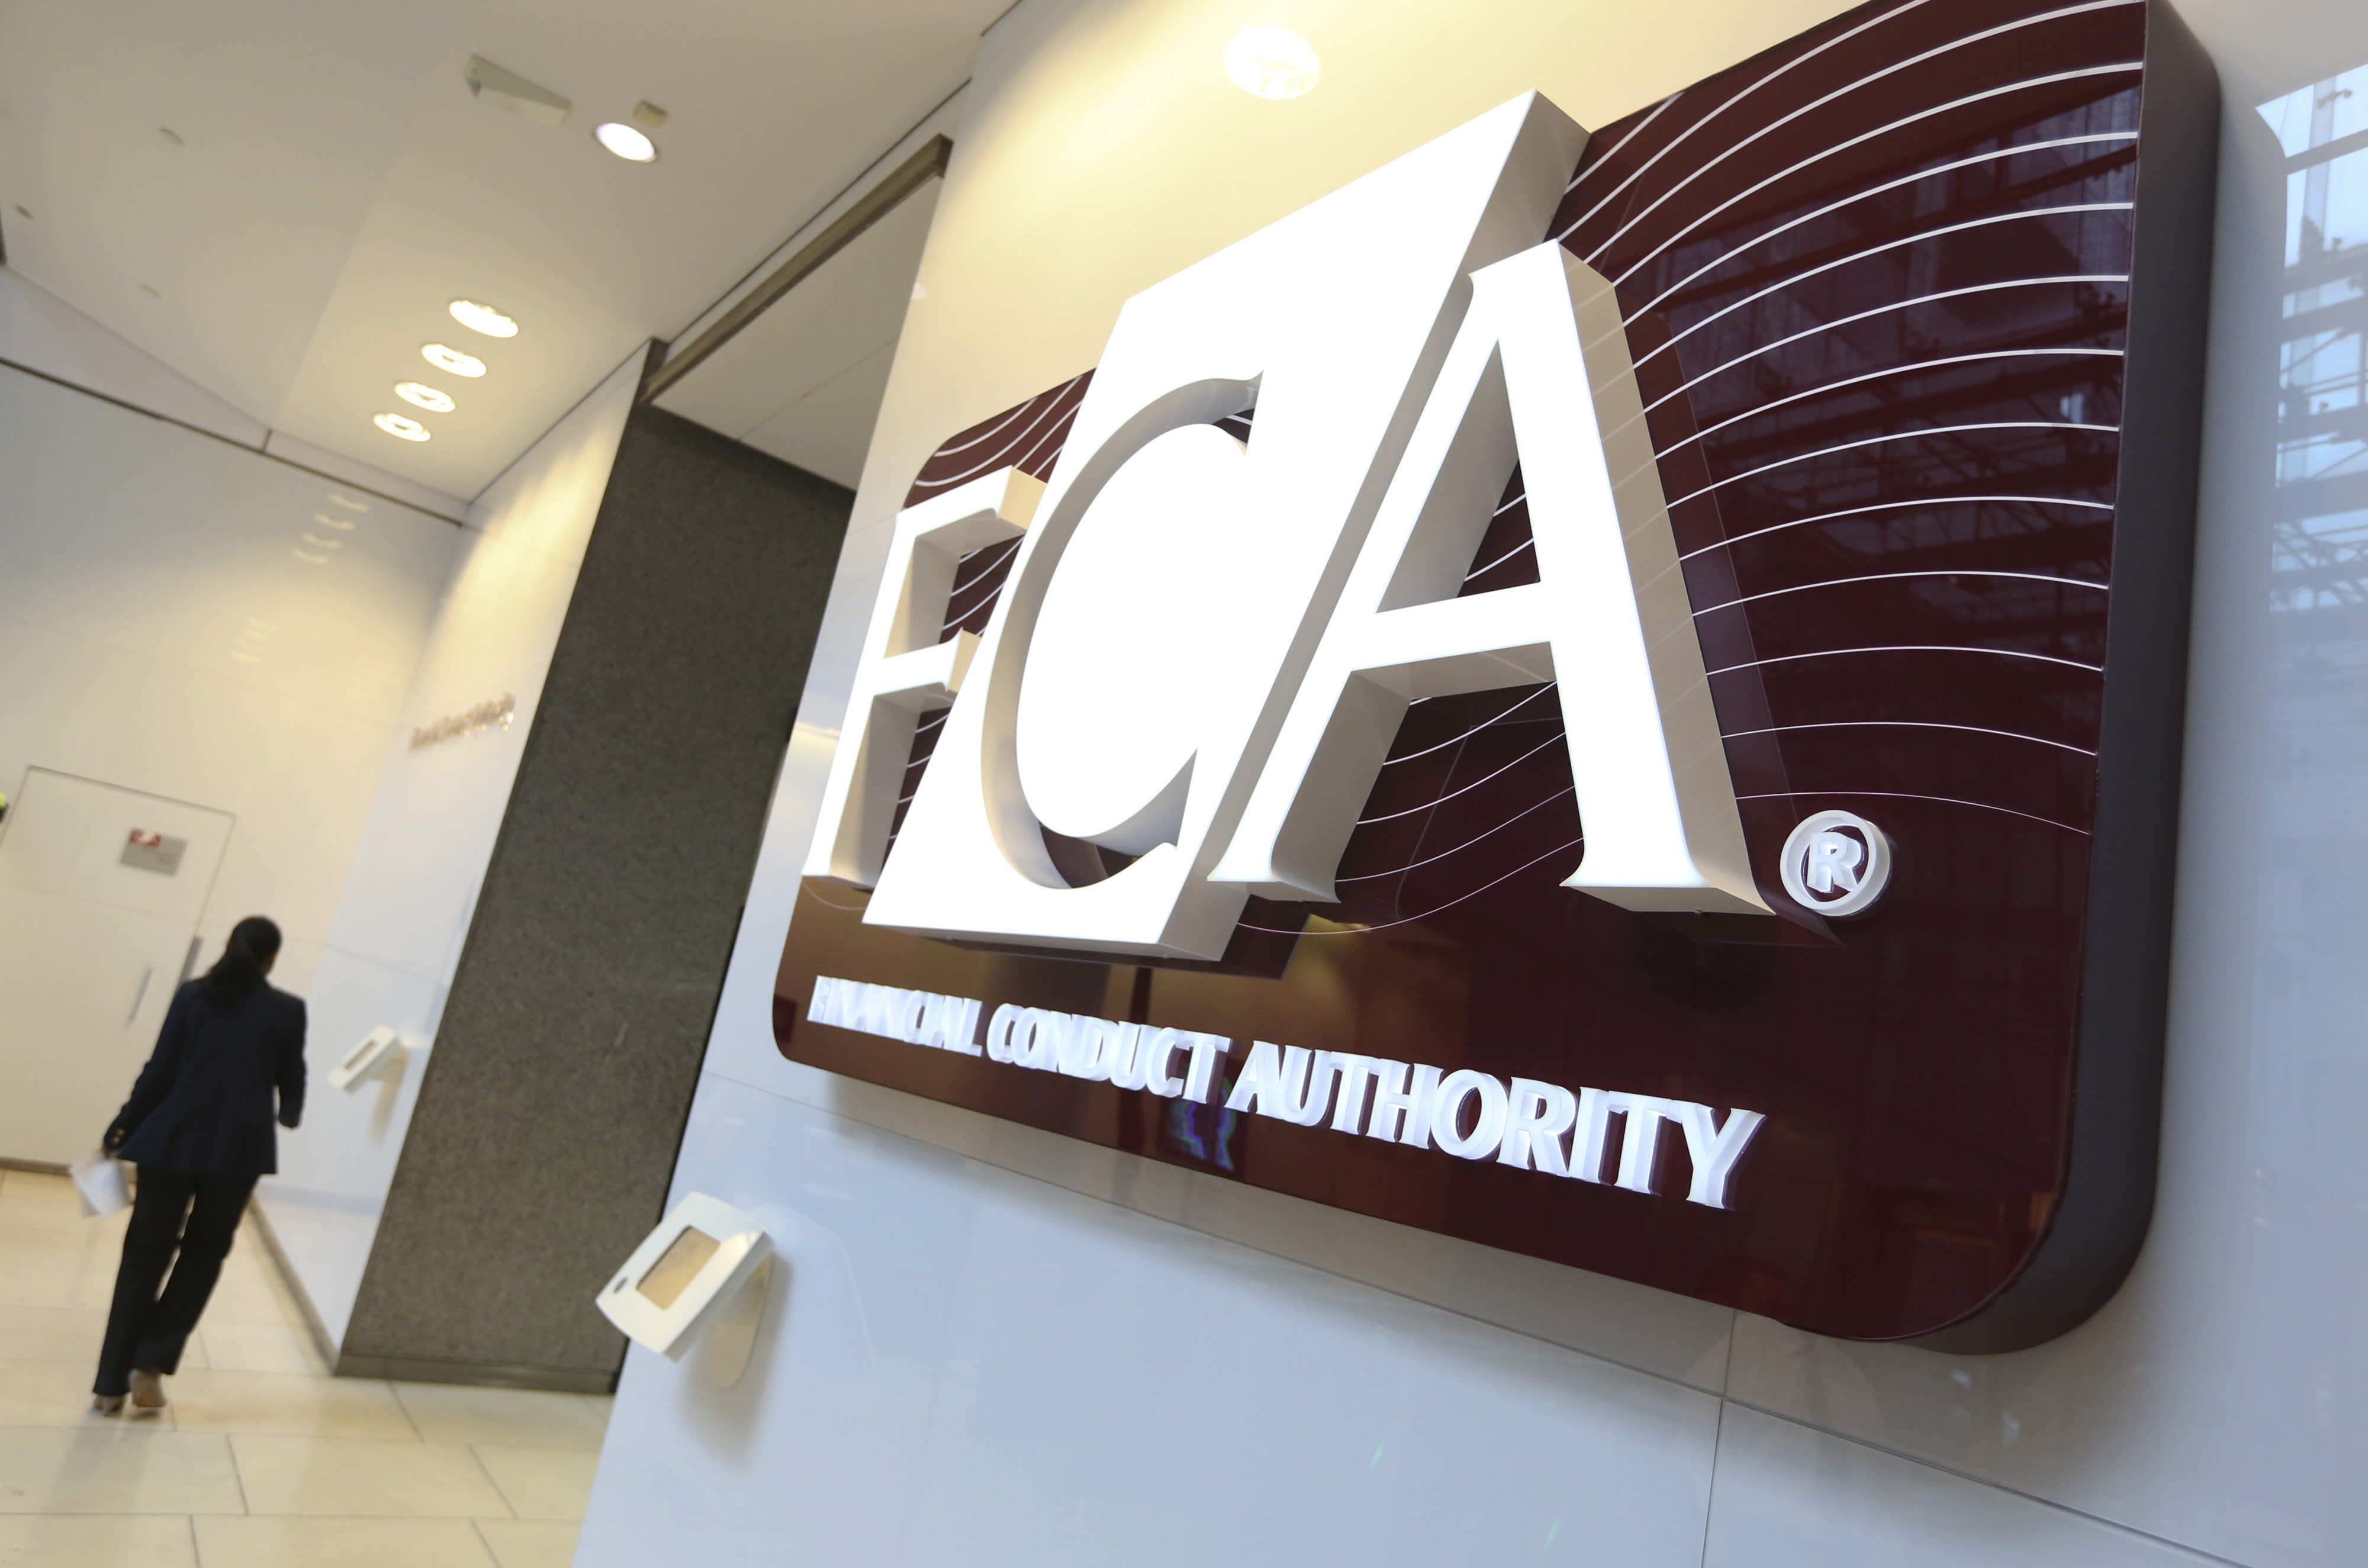 Newton sacks employee over FCA share rigging probe